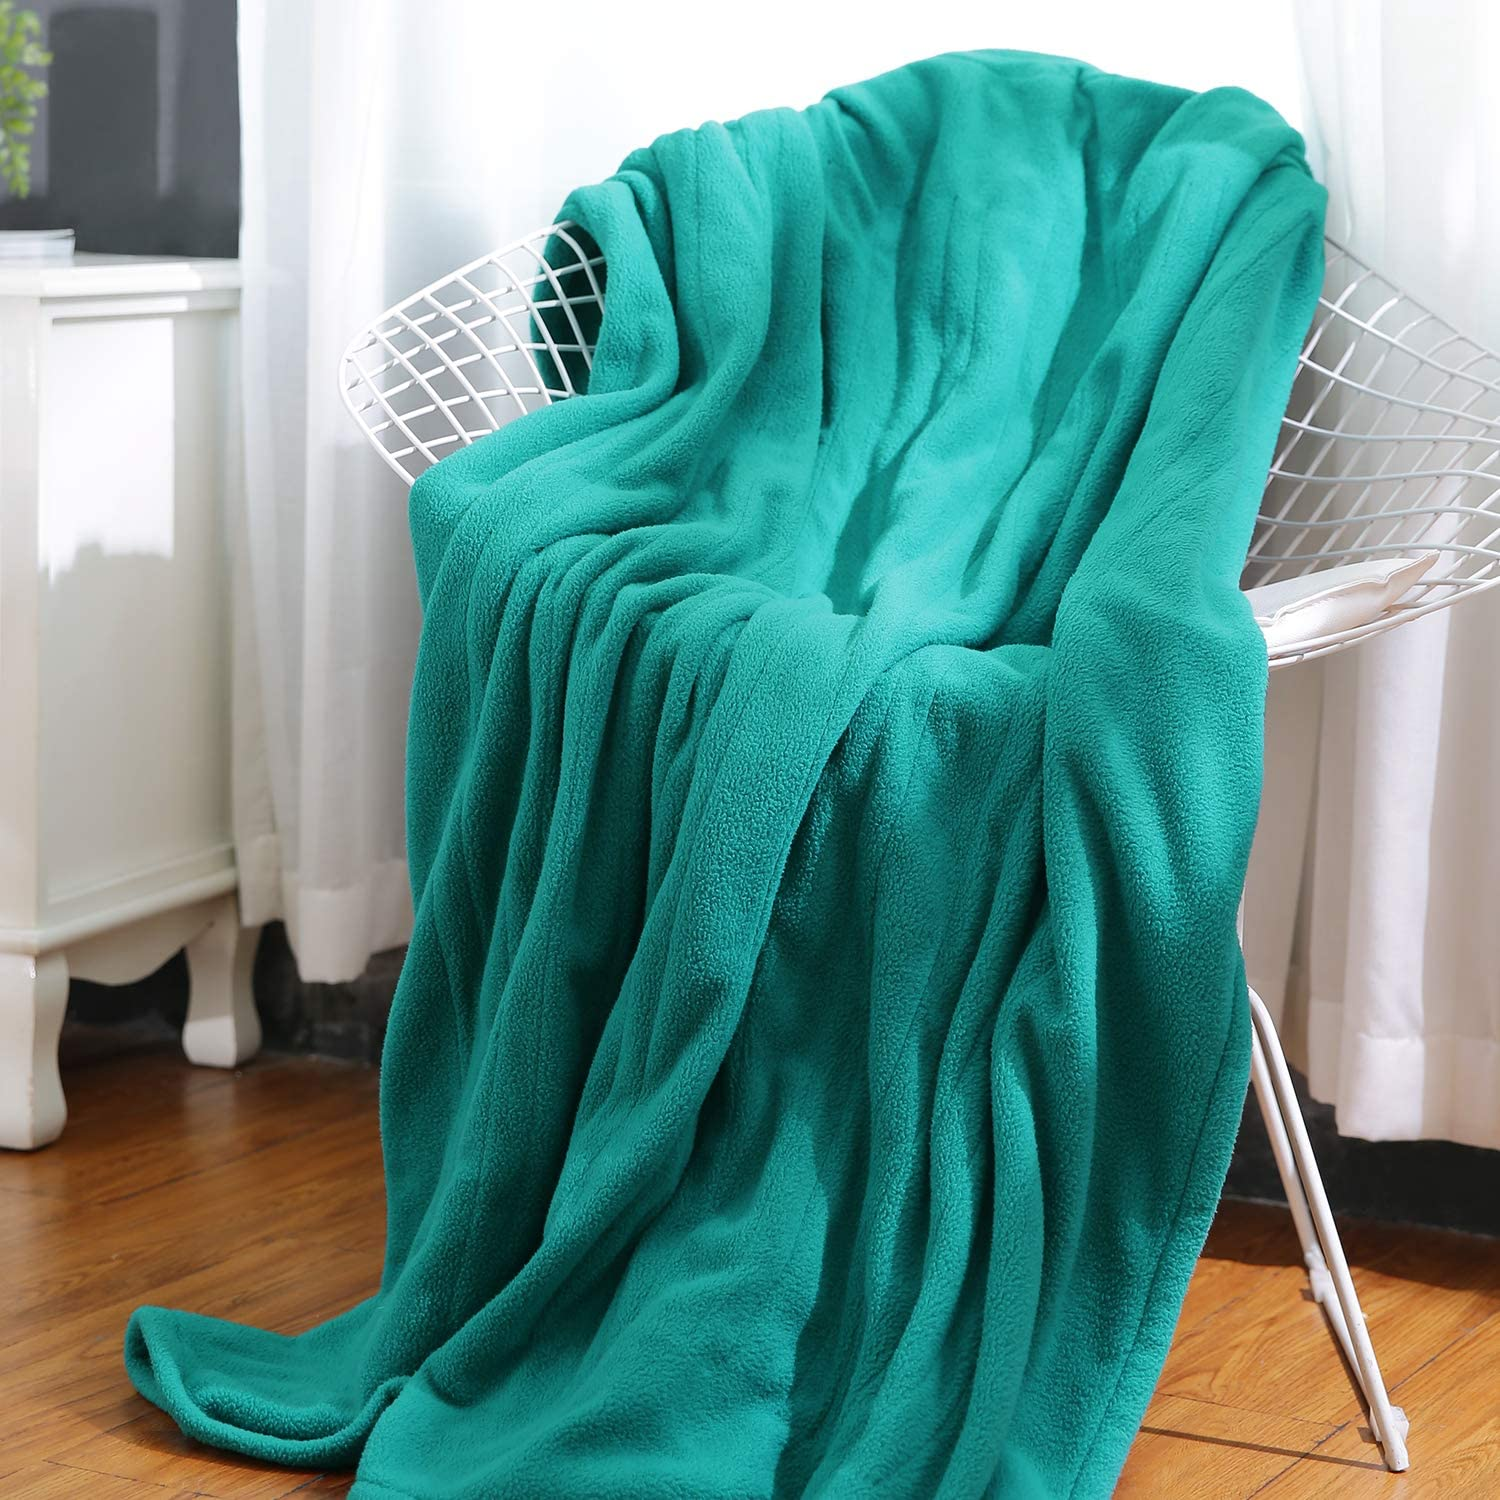 MaxKare Electric Heated Throw Blanket Polar Fleece 50'' x 60'' Lightweight Cozy Ultra-Warm Premium Microfiber Snap Lap Blankets with Auto-Off 4 Heating Levels - Lake Green